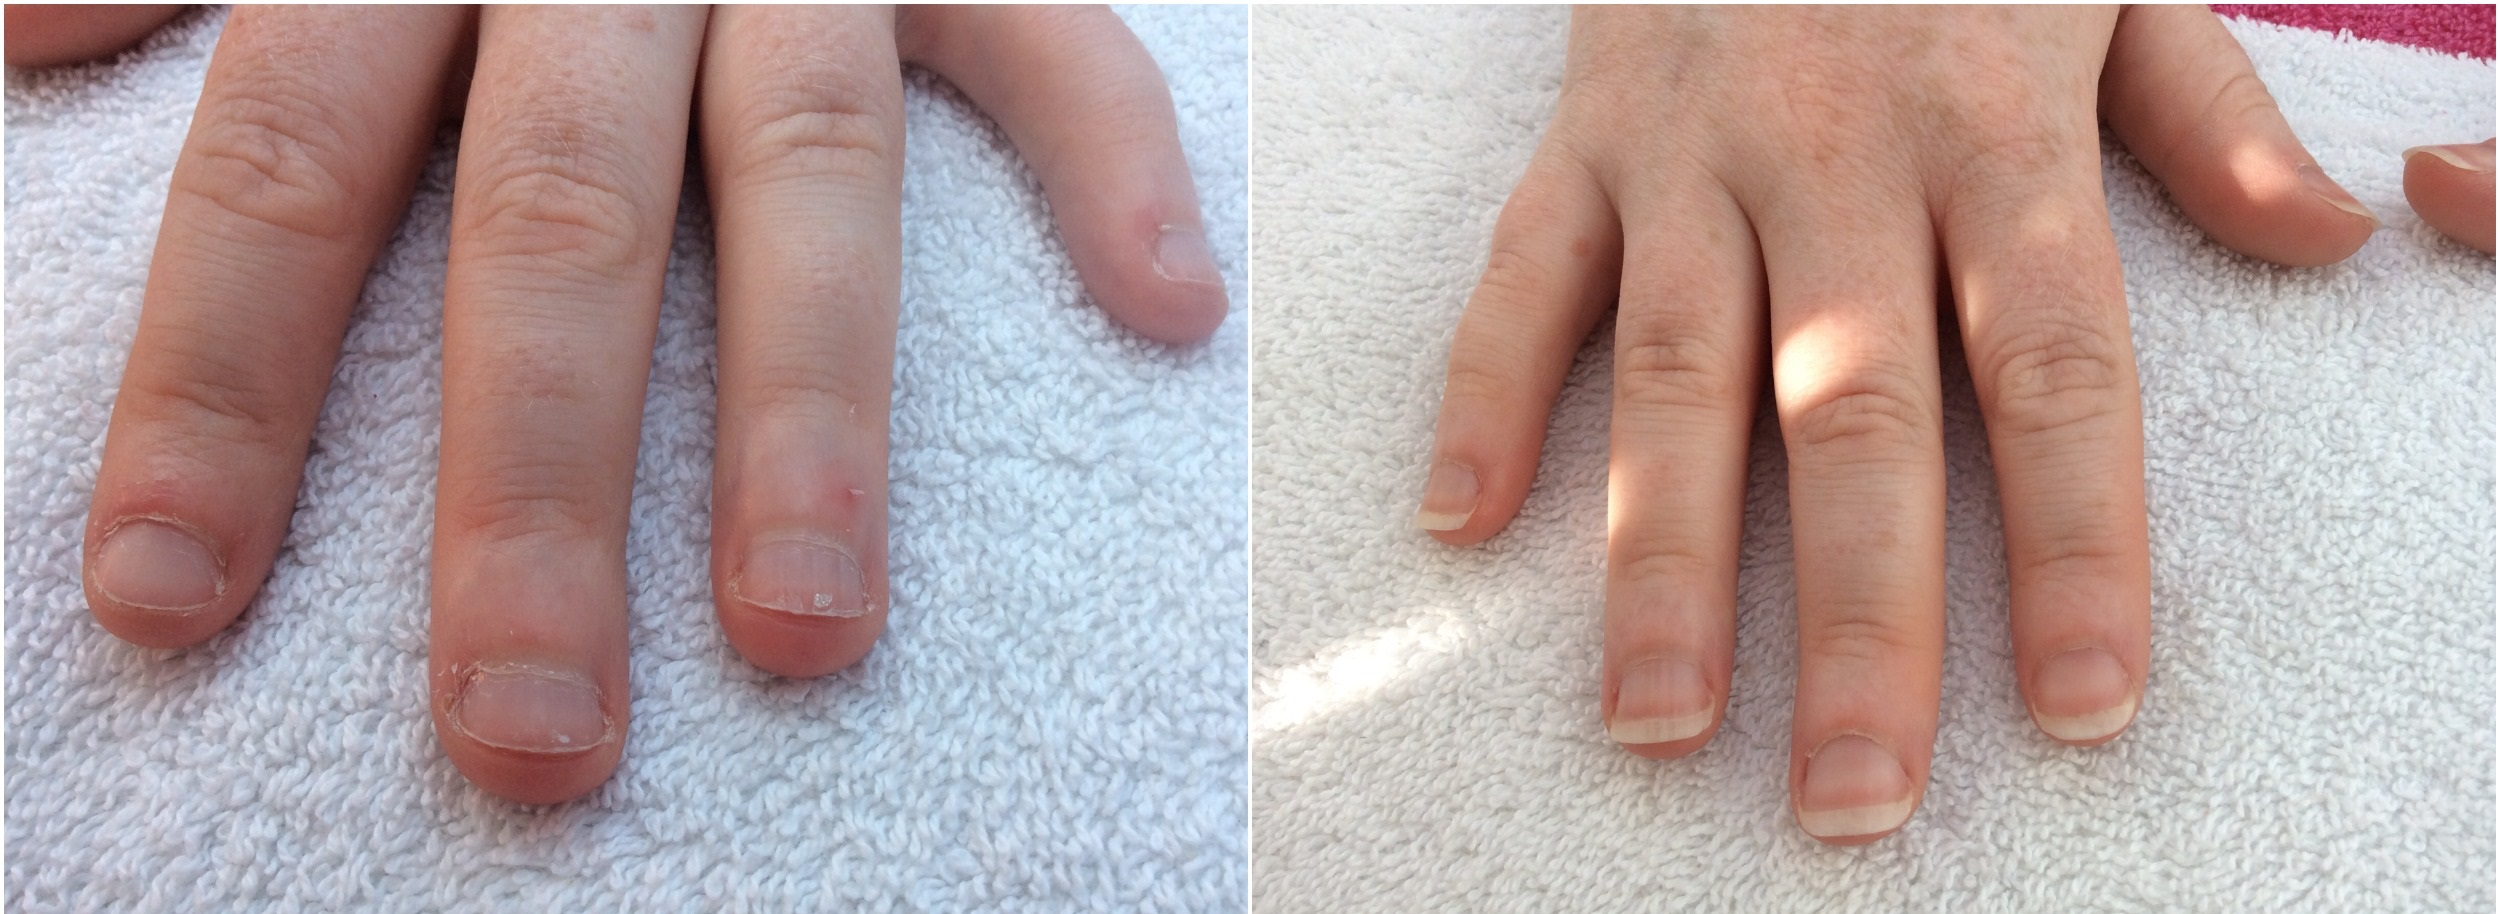 Before and After IBX nail treatment Marie-Louise Coster